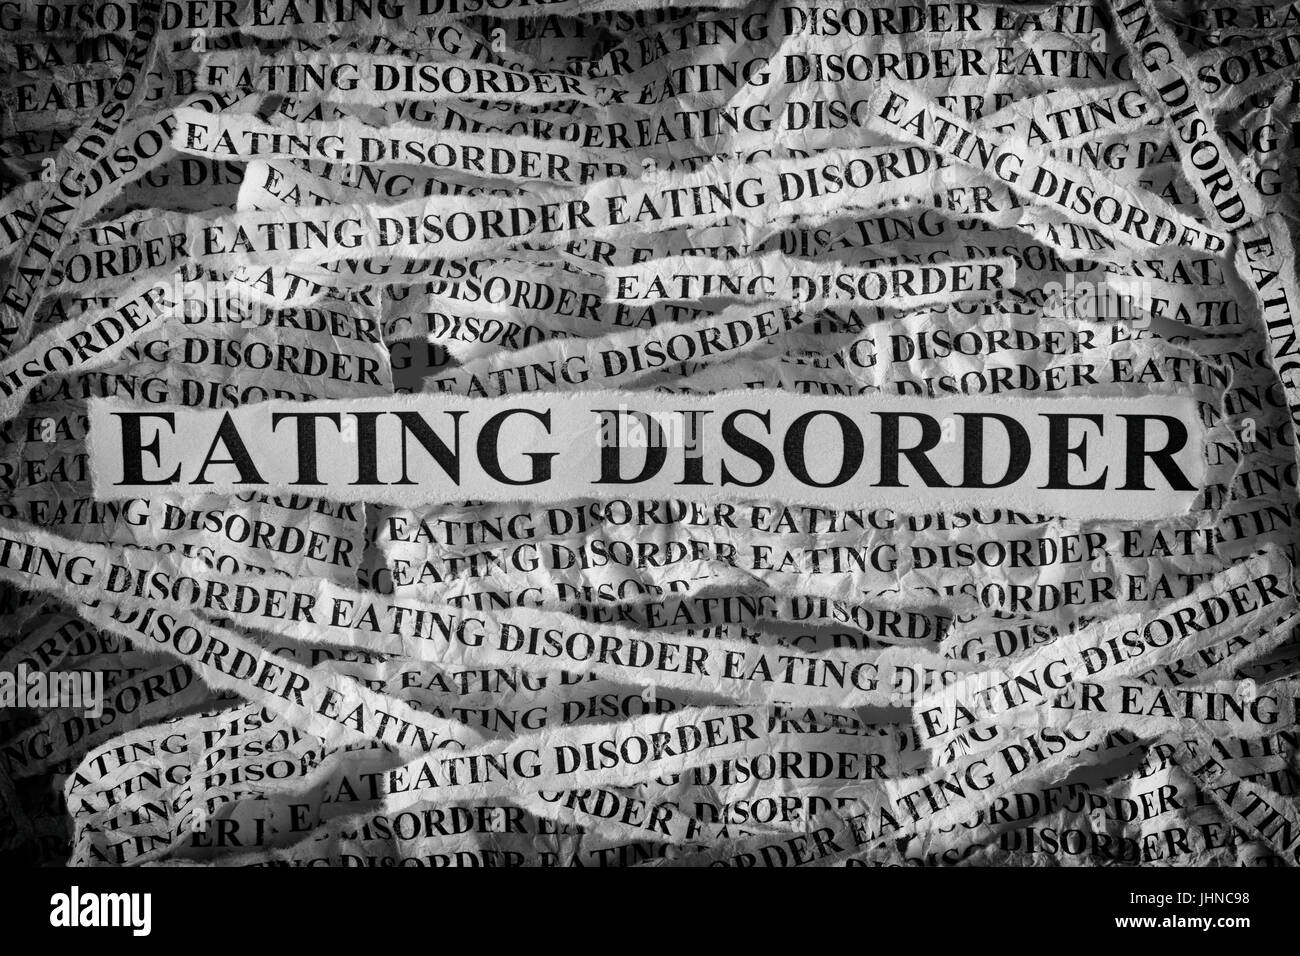 Eating Disorder. Torn pieces of paper with the words Eating Disorder. Concept Image. Black and White. Closeup. - Stock Image